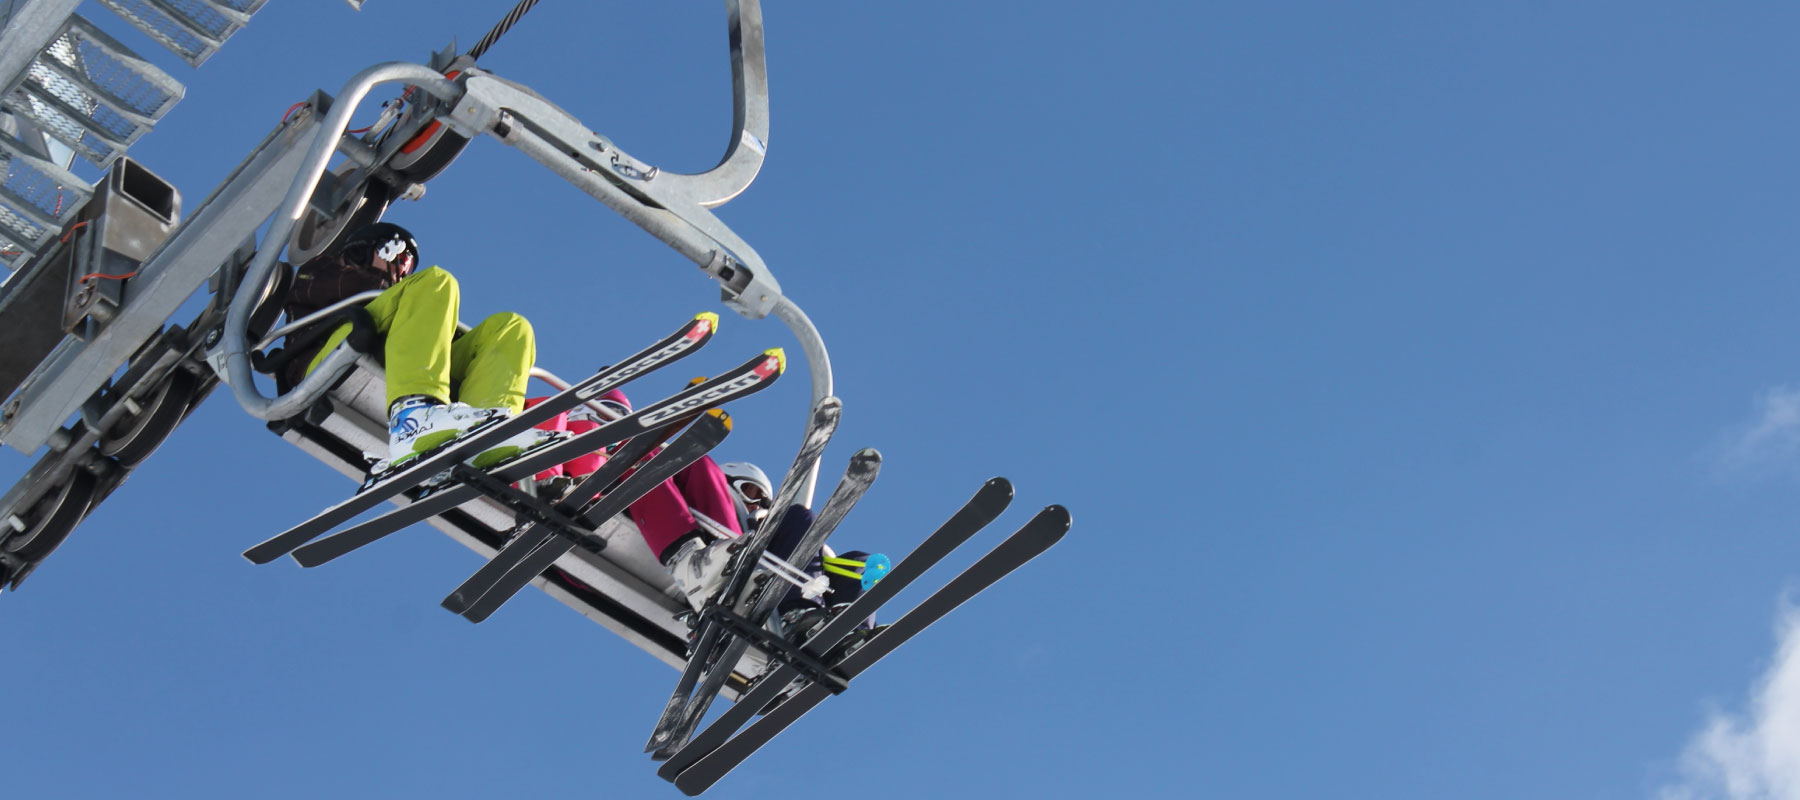 skiers on a lift